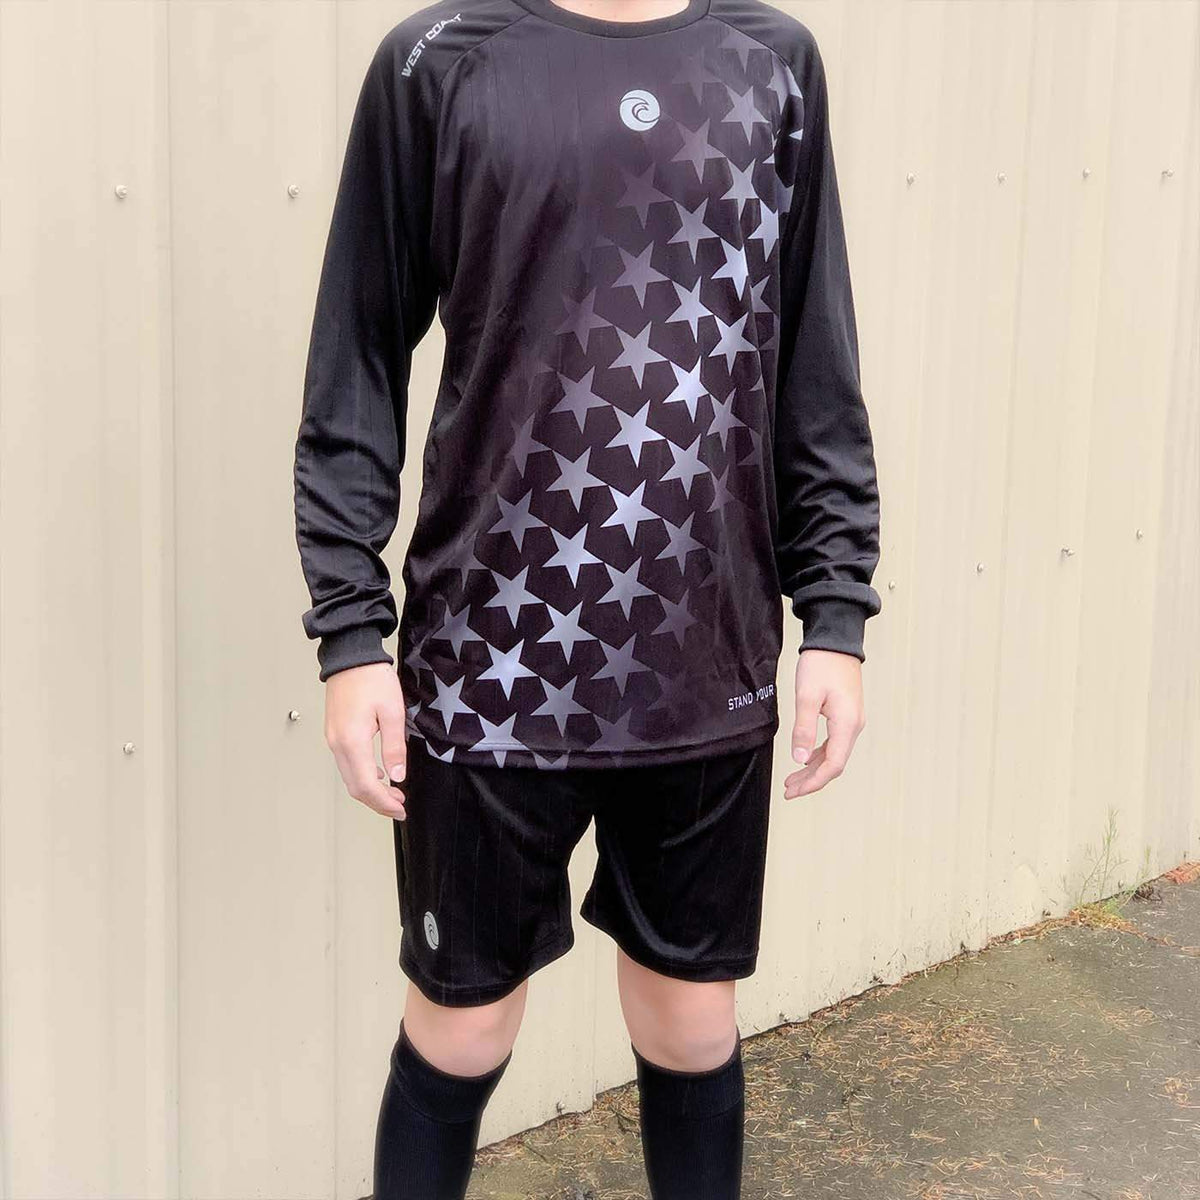 FREEDOM Titan Goalkeeper Kit - West Coast Goalkeeping